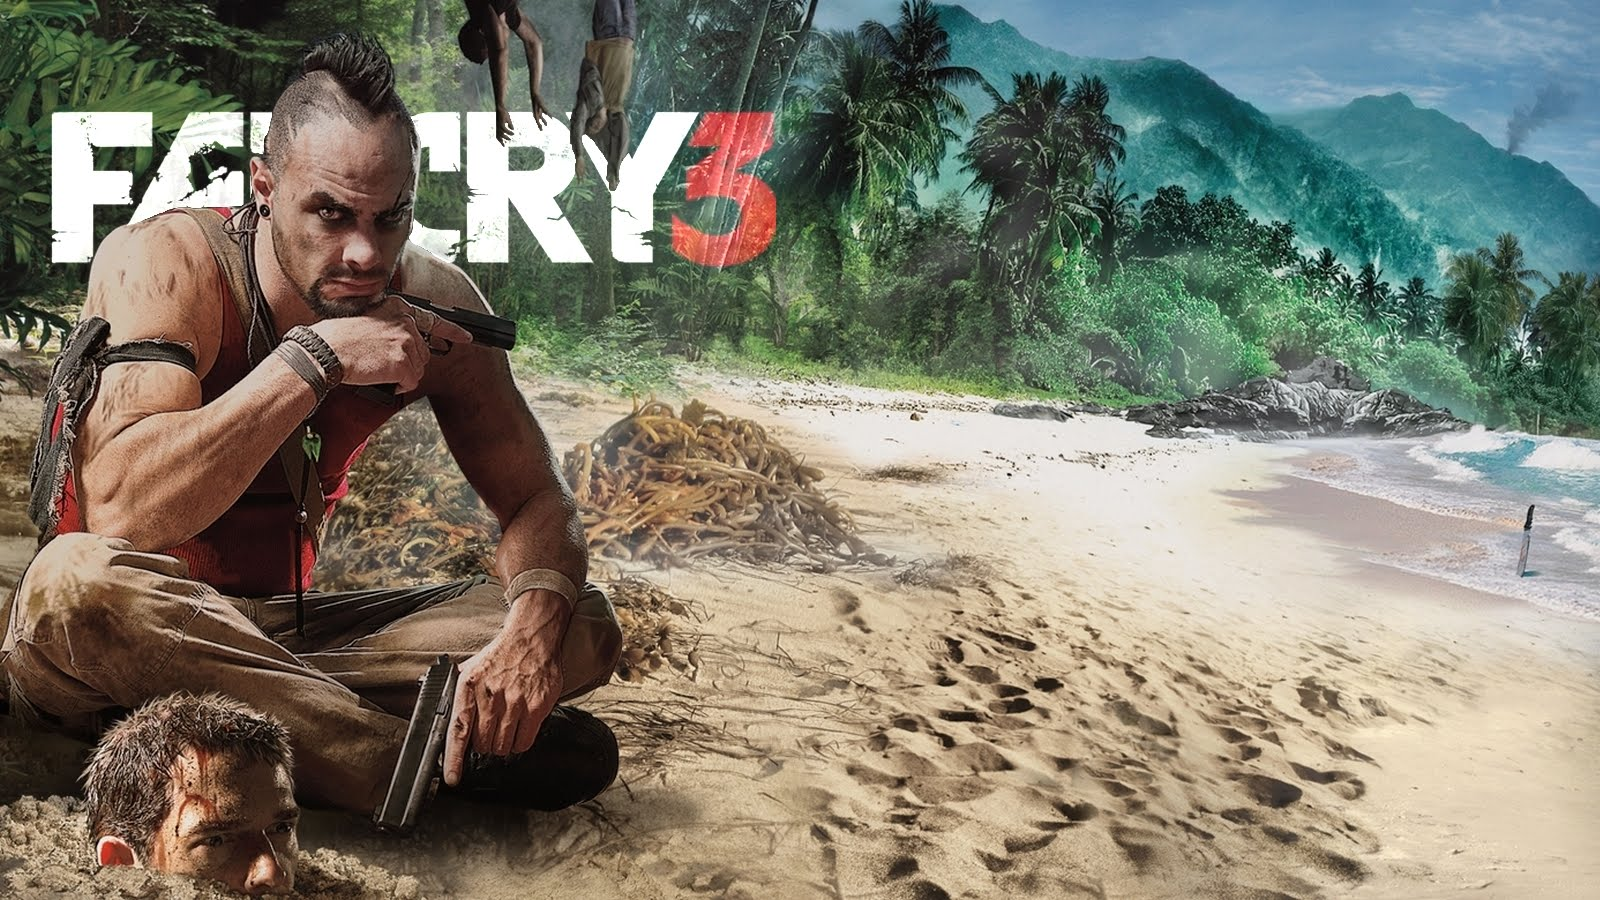 The Elderly Gamer Far Cry 3 Wallpaper 1600x900